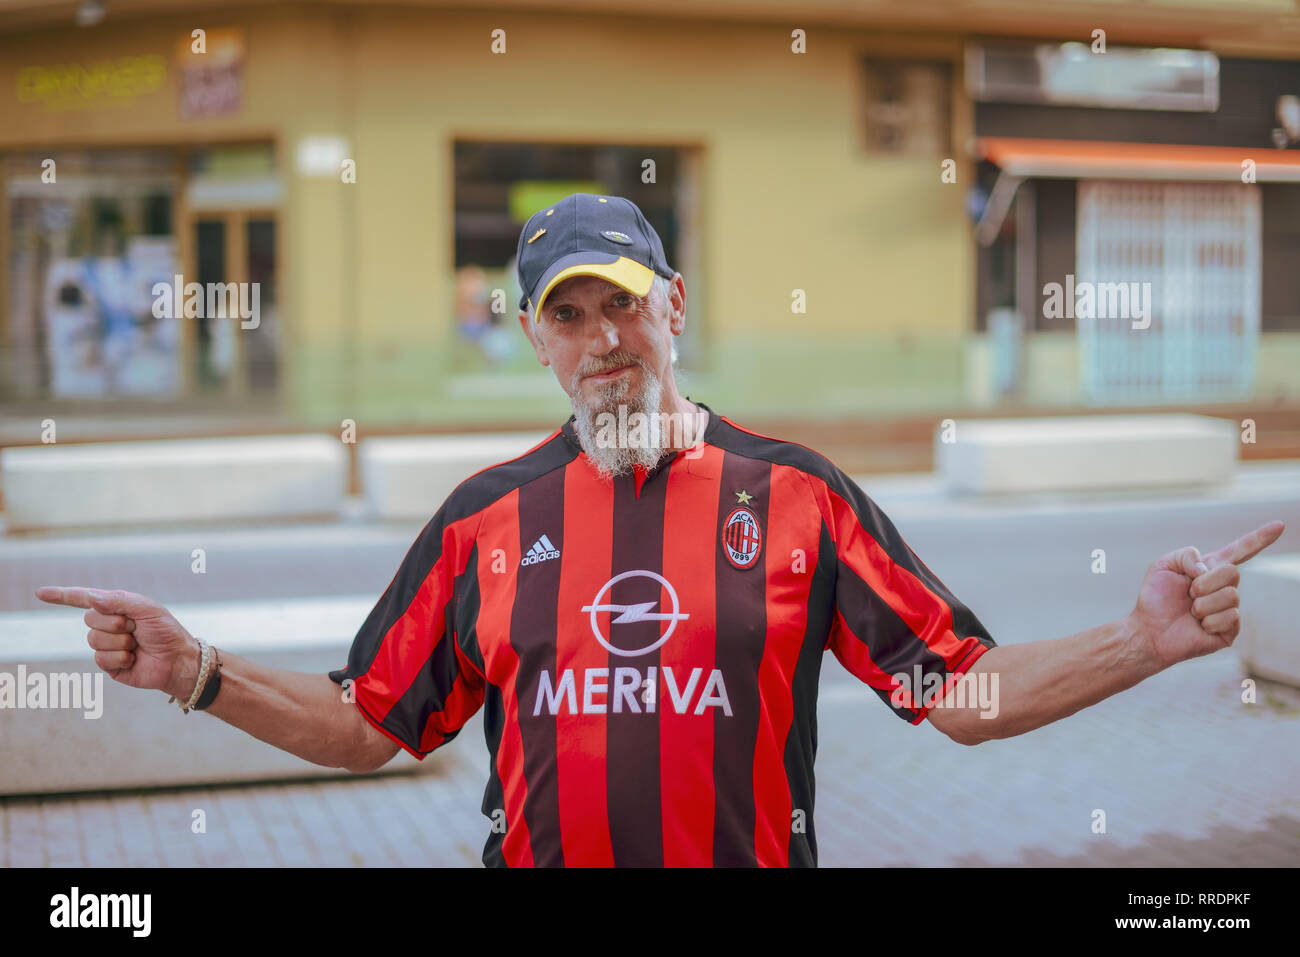 A man wearing an AC Milan football t-shirt standing in the street in Denia, Spain. - Stock Image